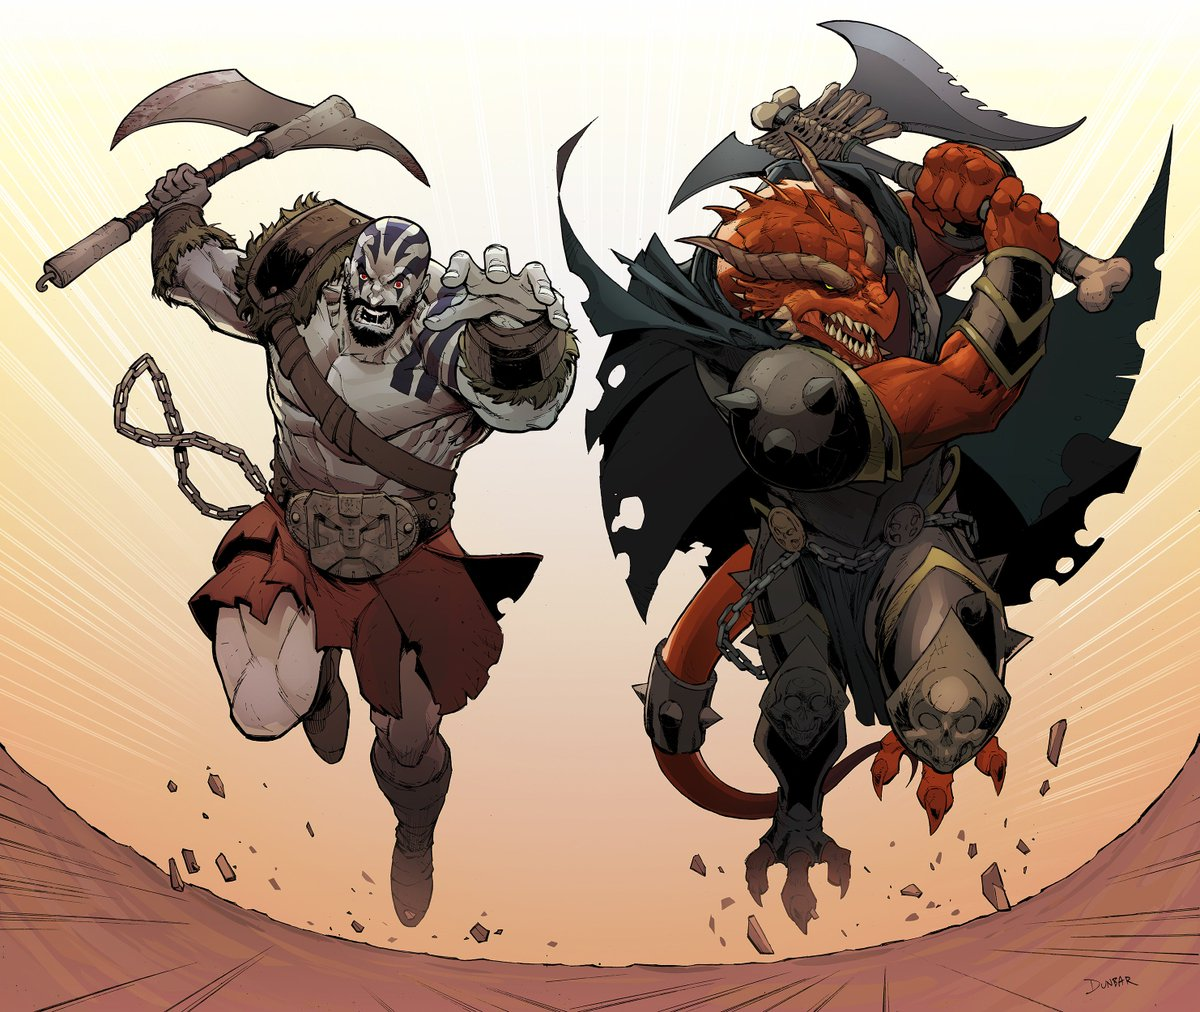 Max Dunbar On Twitter Some Fan Art Of Grog And Arkhan From Criticalrole Cuz They Re Awesome Criticalrolefanart Jocksmachina Discussionno spoilers critical role is better that anything on tv right now. some fan art of grog and arkhan from